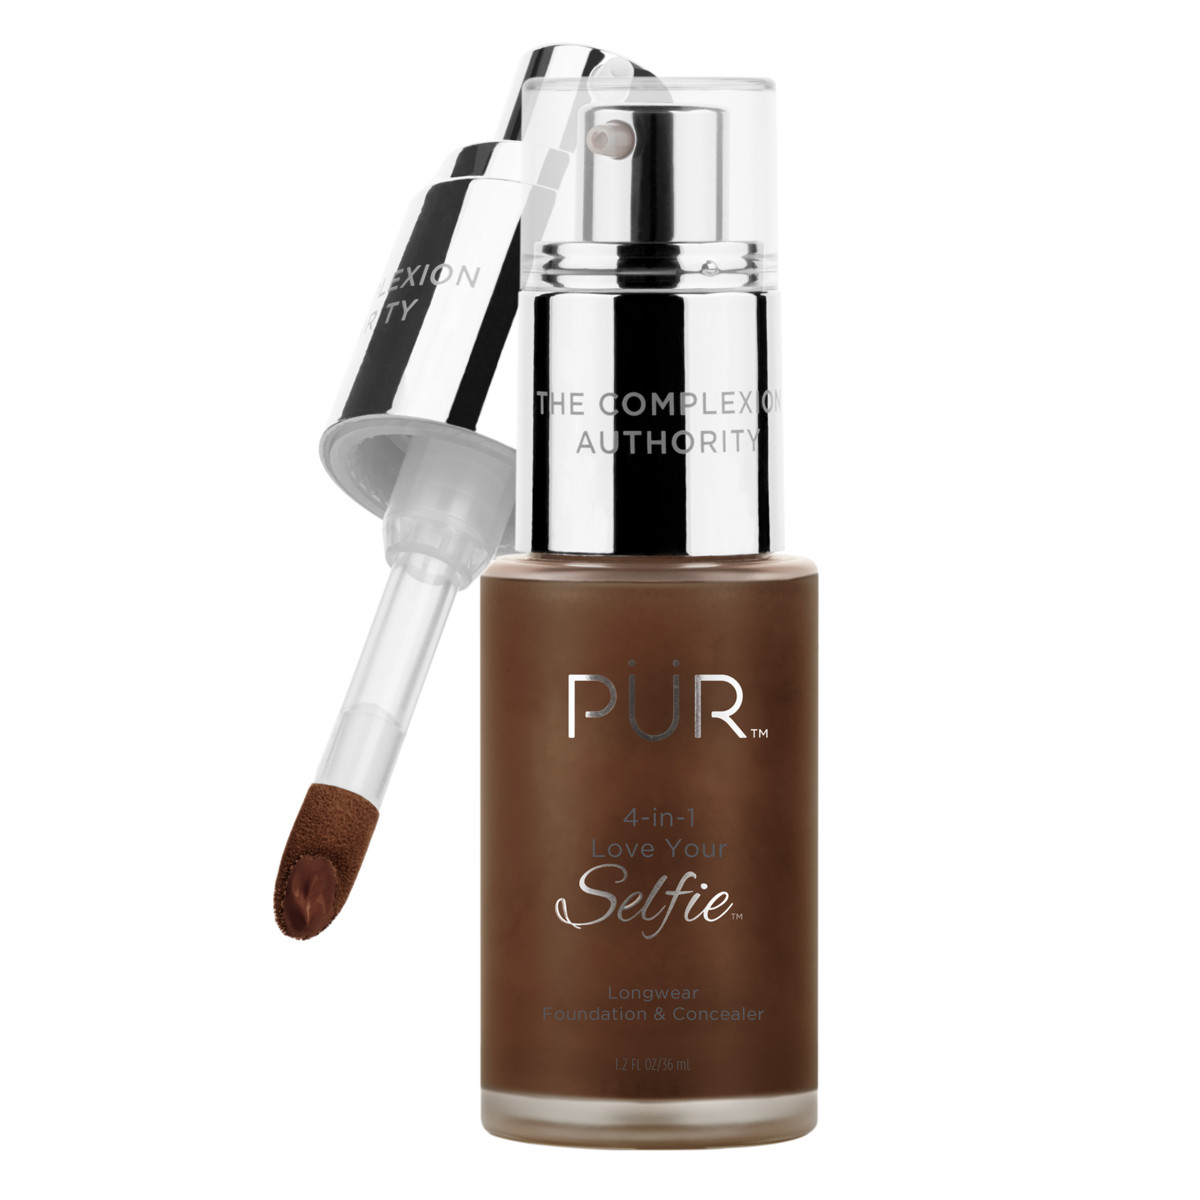 4-in-1 Love Your Selfie™ Longwear Foundation & Concealer in DPN3